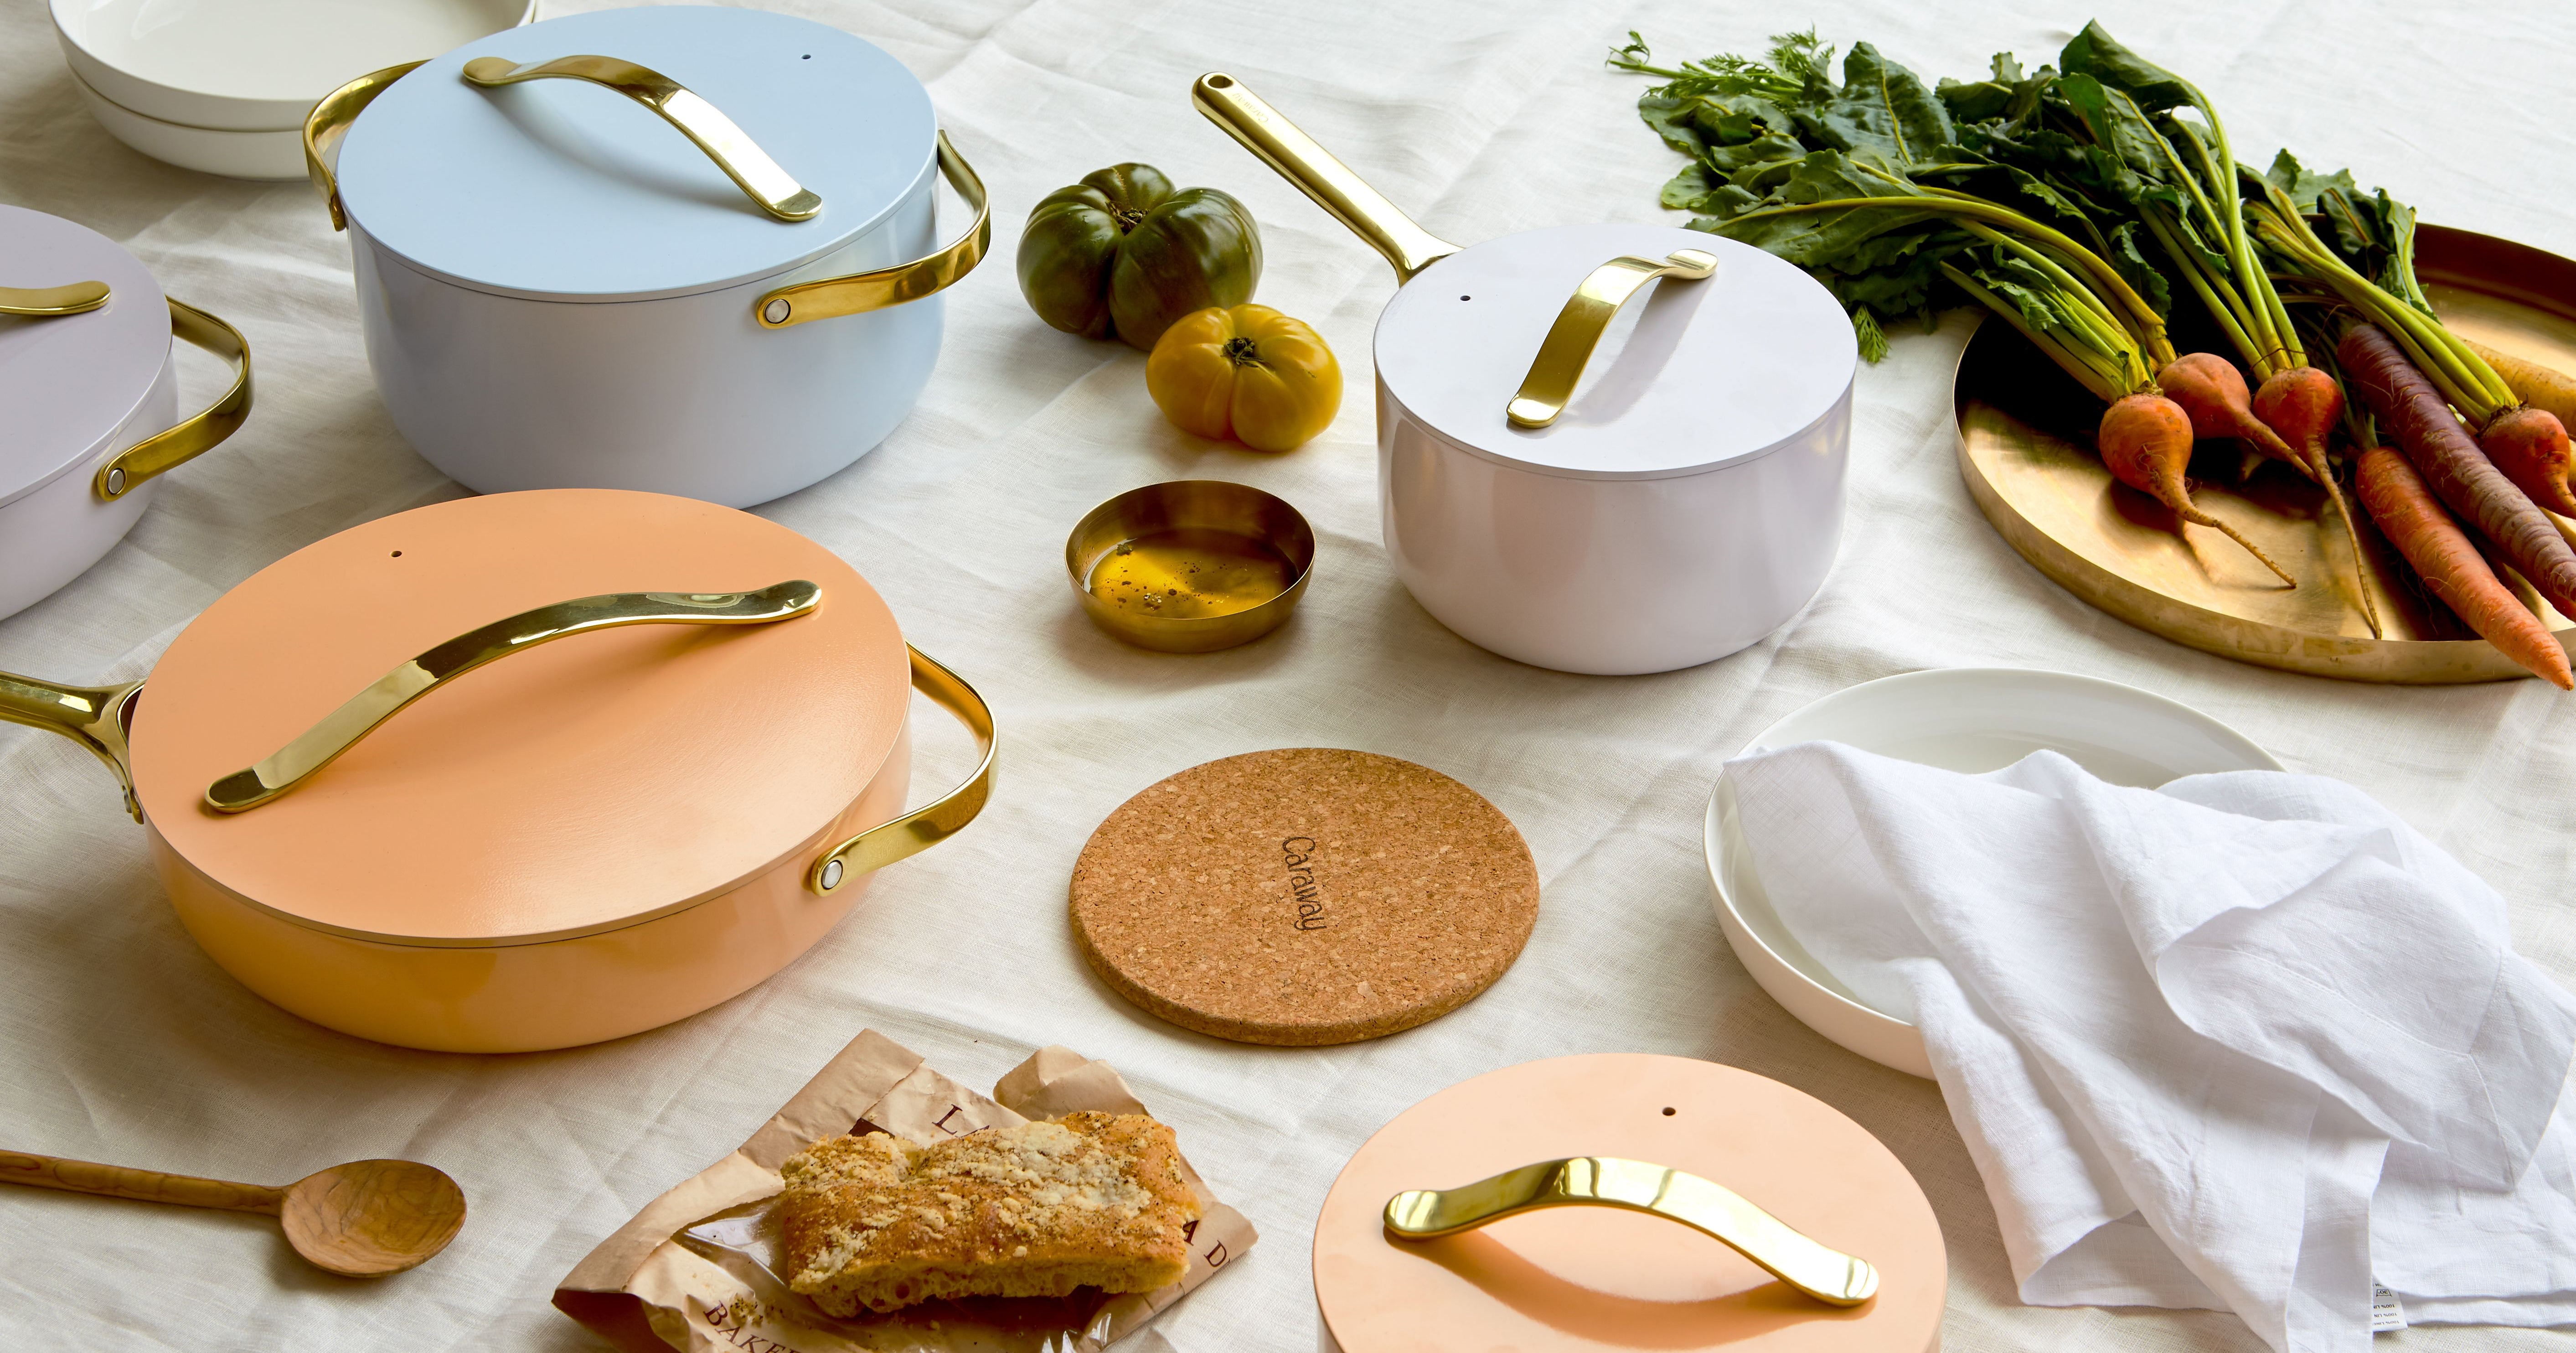 Caraway's New Pastel Cookware Is Going To Sell Out